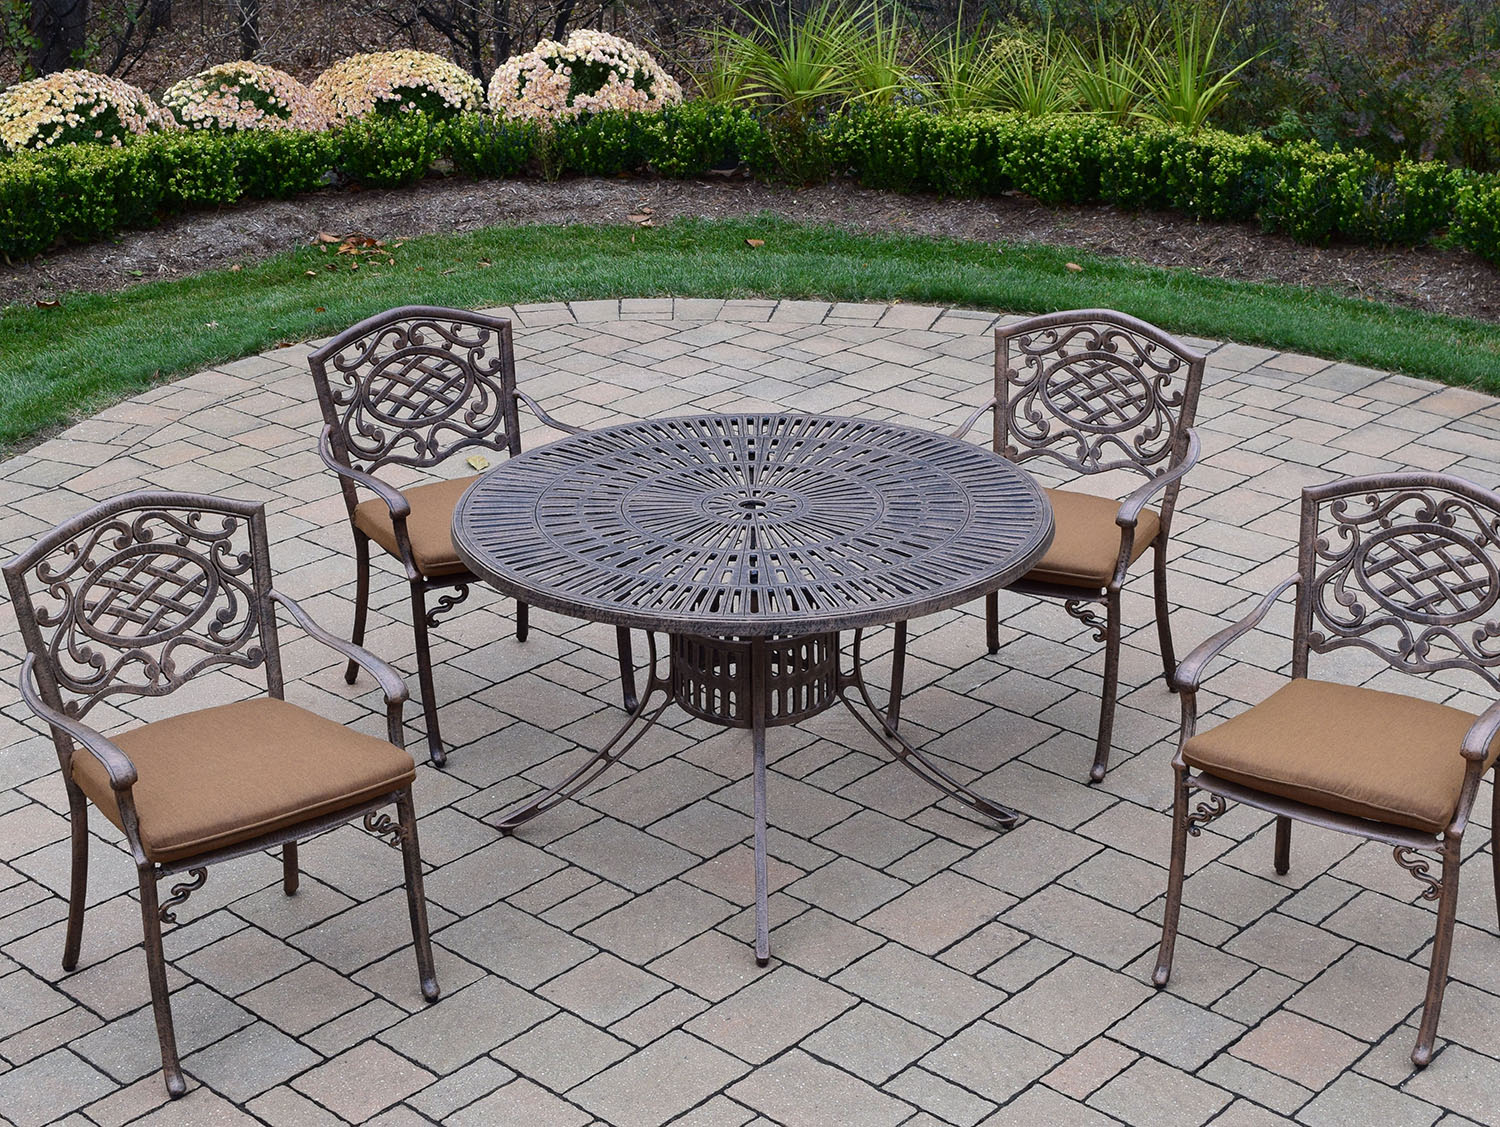 Tasteful Sunray Antique Bronze Dining Set Cushions Product Photo